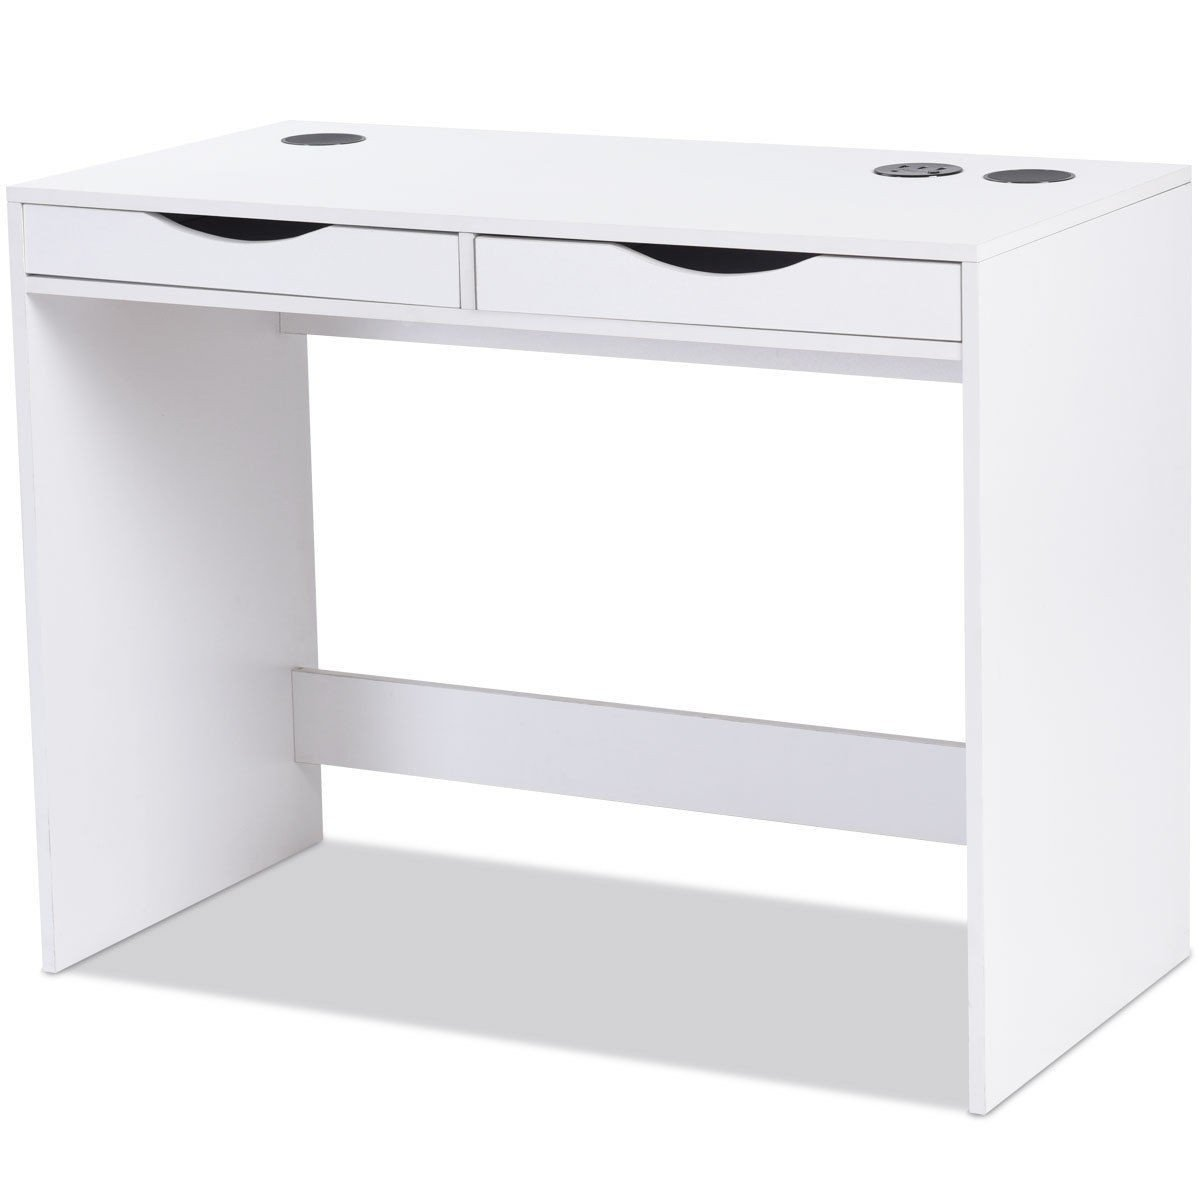 39.5'' White Computer Desk Laptop Writing Table Built in Bluetooth Speakers w/Drawer & USB Port with Ebook